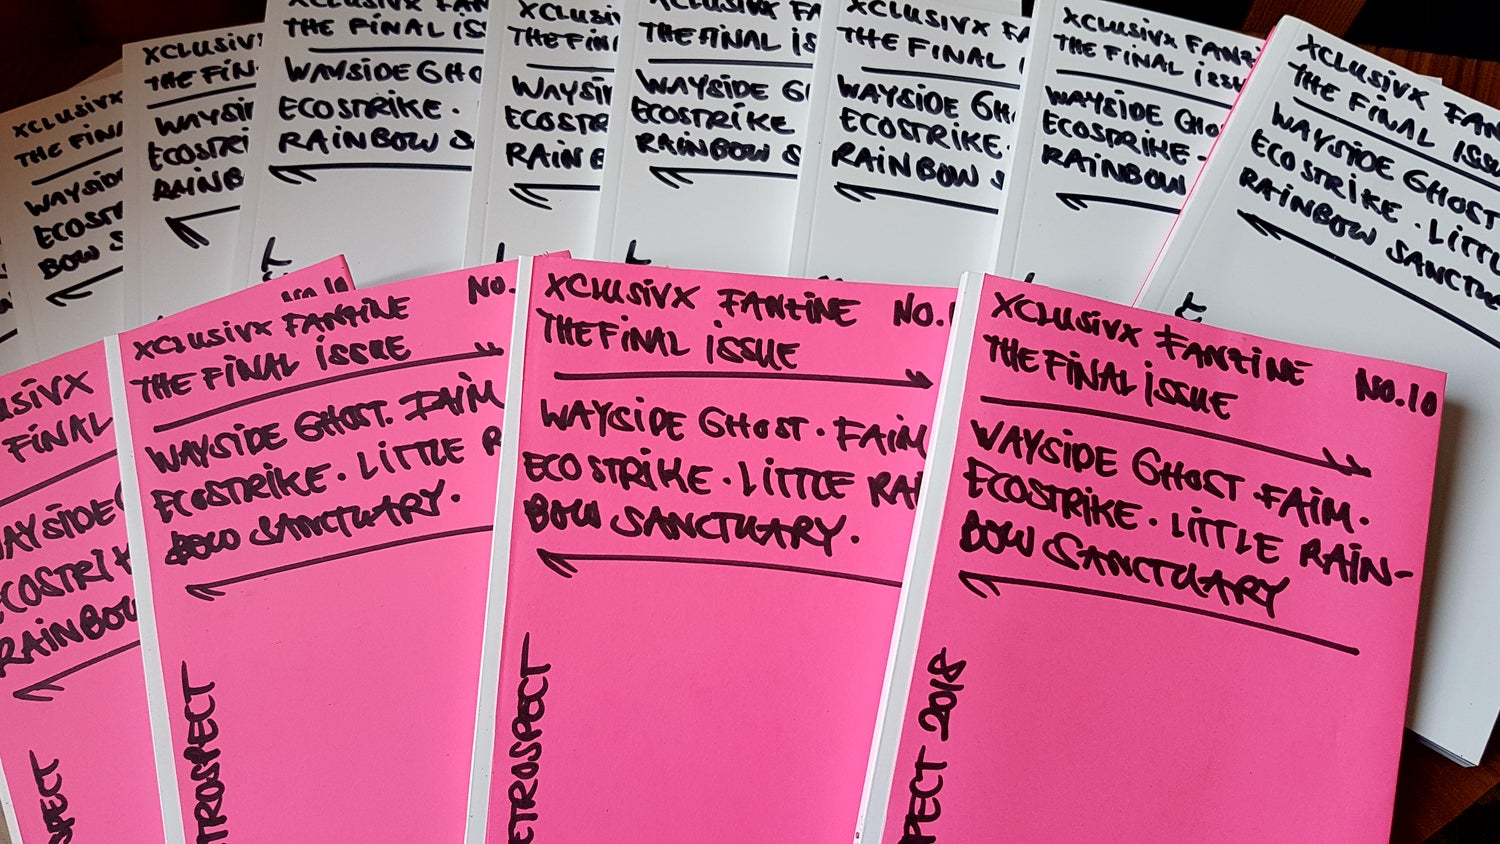 Image of last chance: the final issue #10